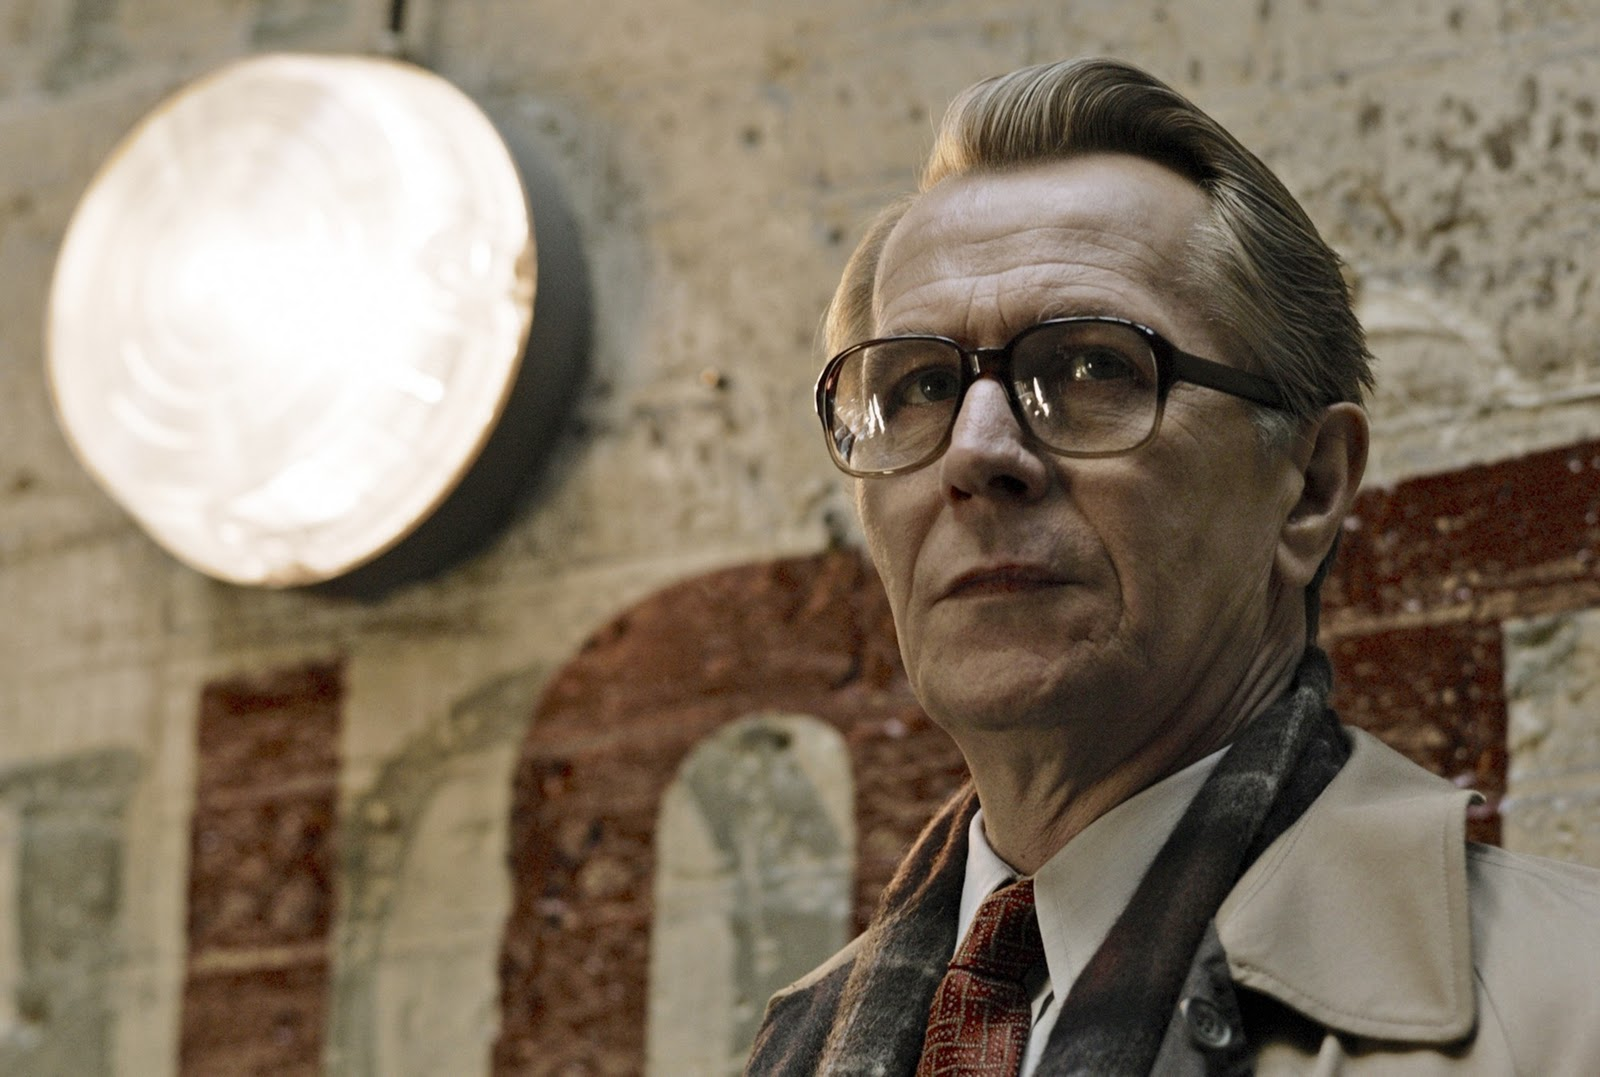 http://3.bp.blogspot.com/-Sy3ubkTgeJo/TvBNzelKnbI/AAAAAAAAH40/mCWojjjRWoY/s1600/Tinker+Tailor+Soldier+Spy+Gary+Oldman+as+George+Smiley+glasses.jpg